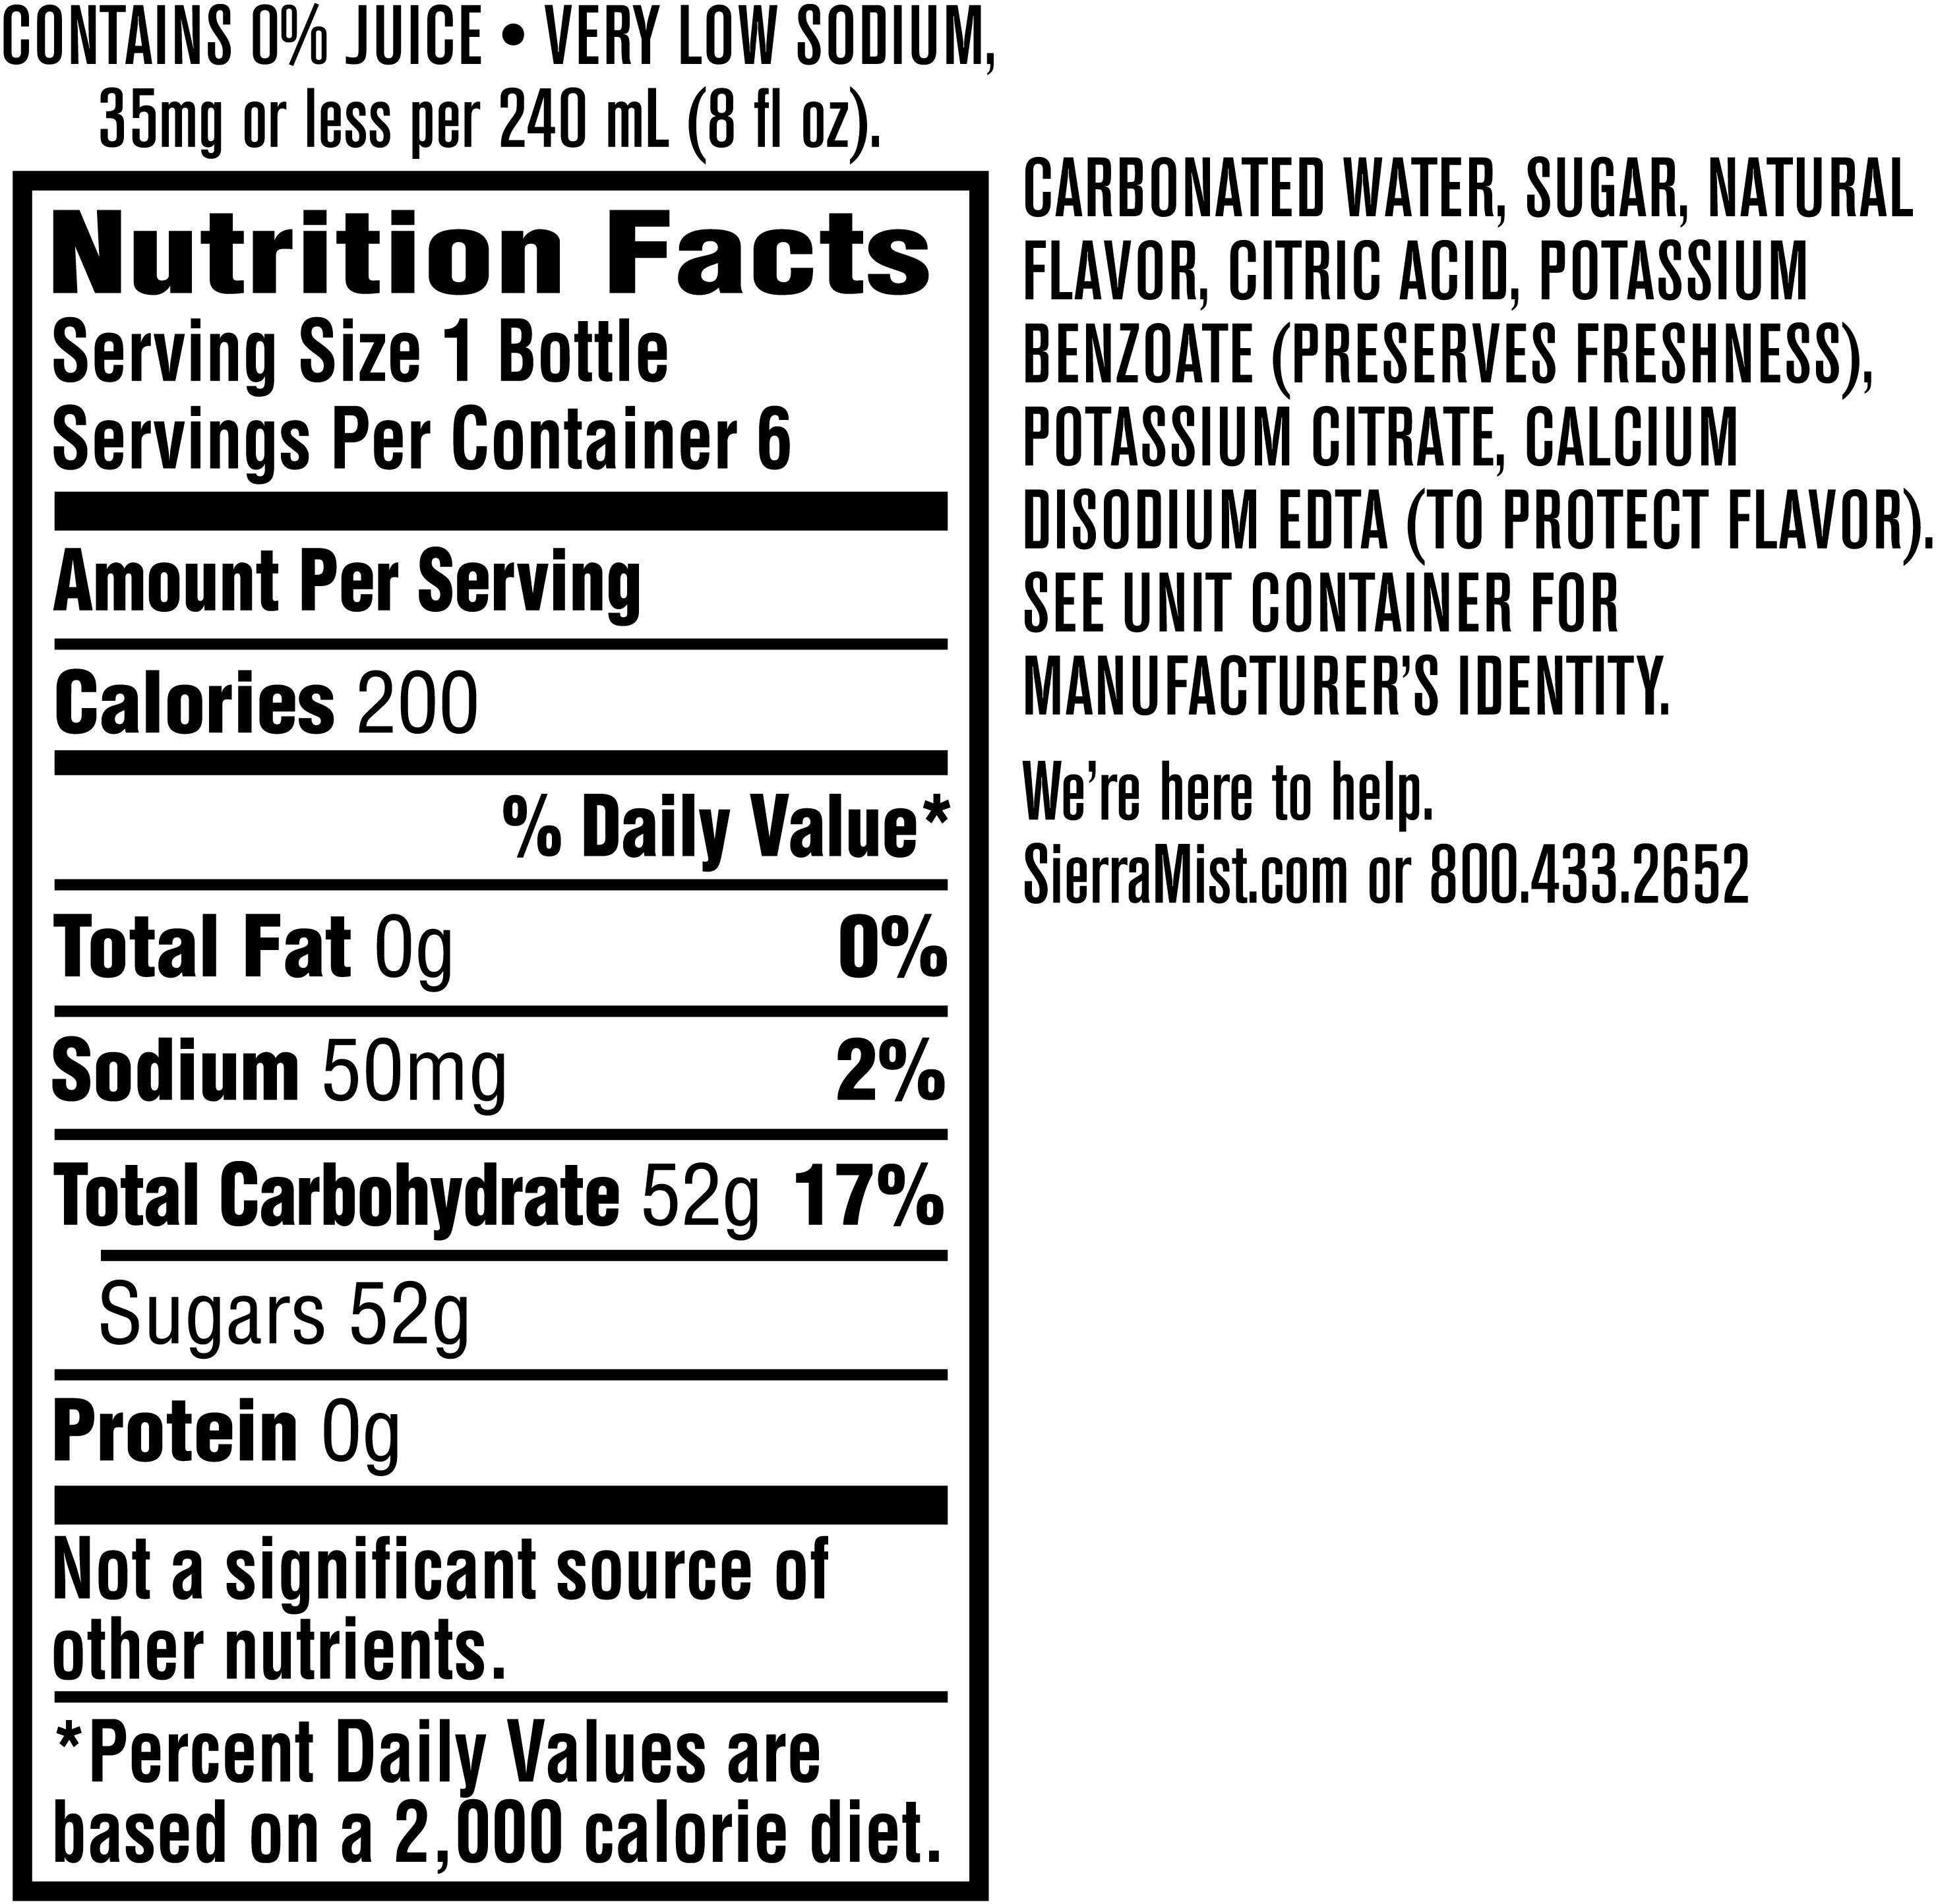 Image describing nutrition information for product Sierra Mist Lemon Lime